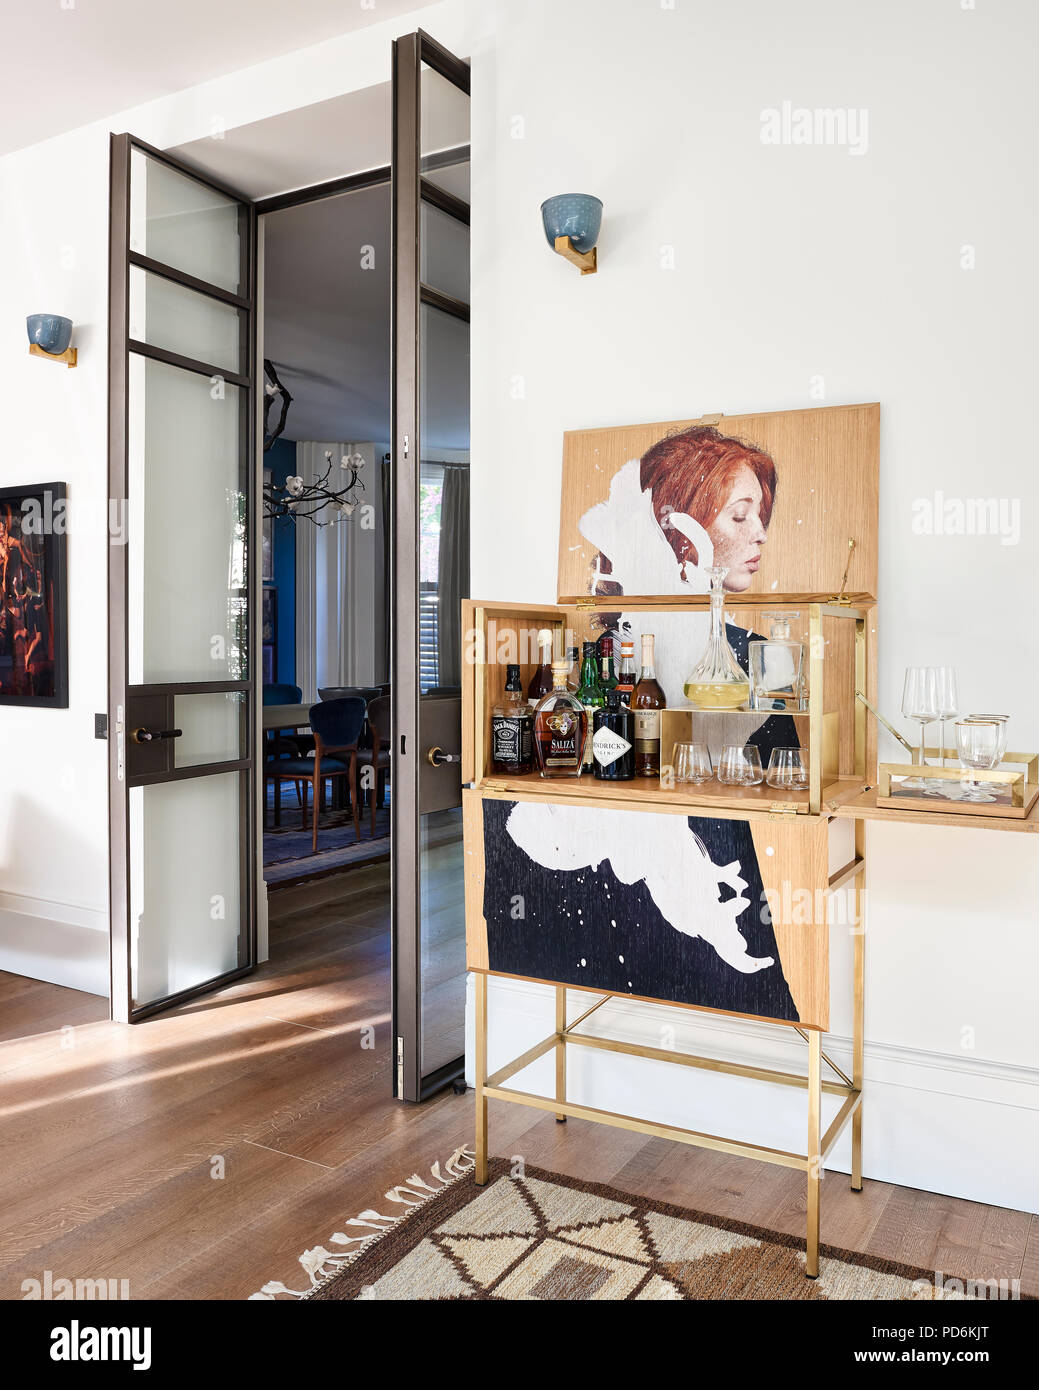 Drinks cabinet with artwork at double height doorway with blue and gold wall lights - Stock Image